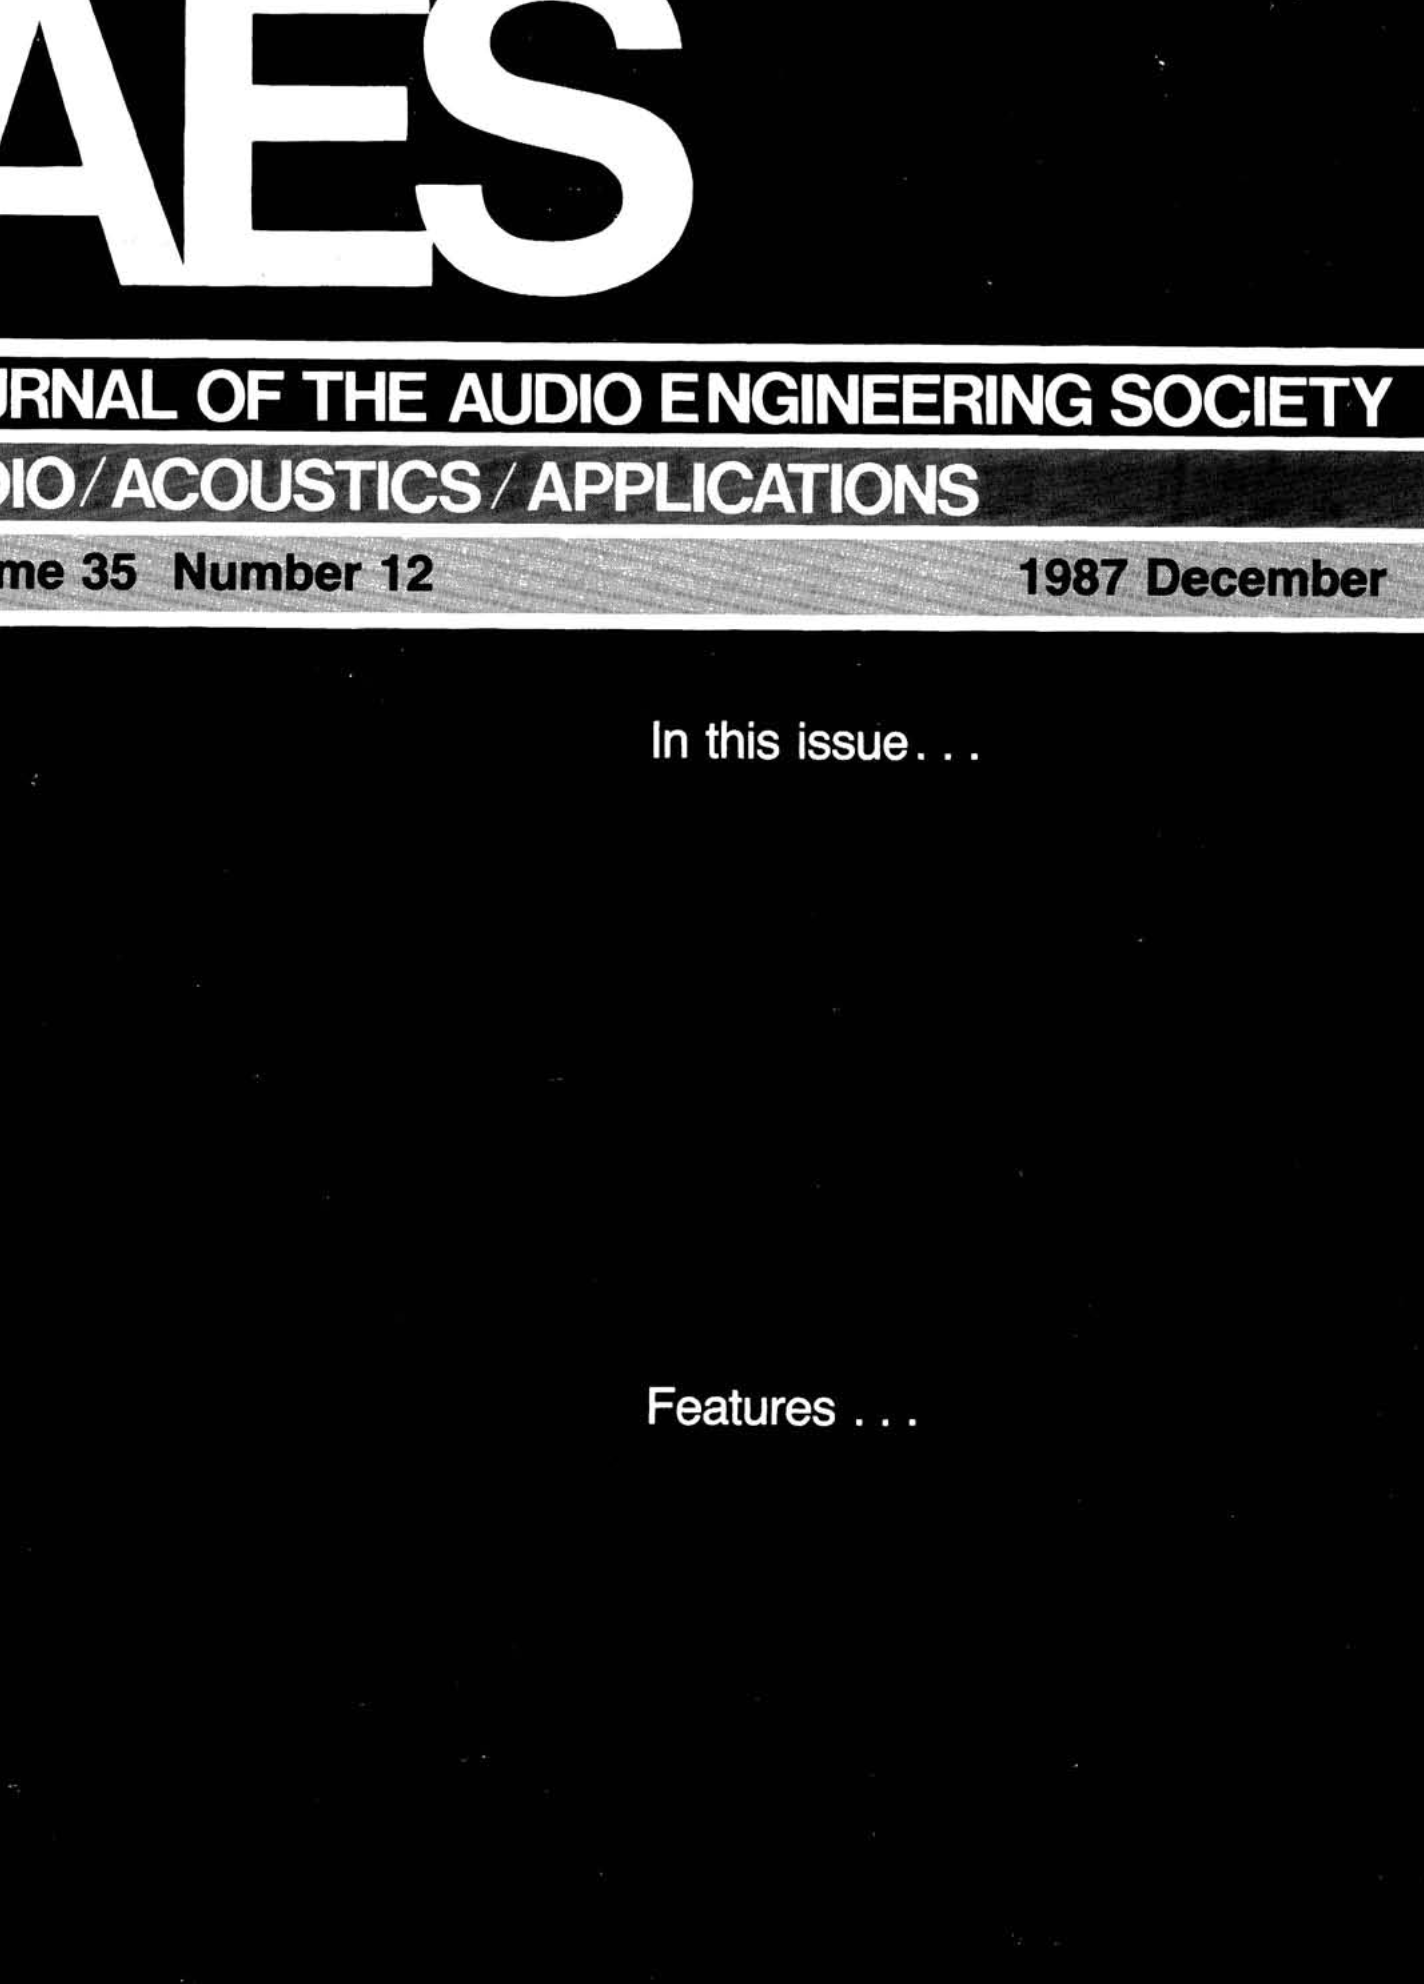 Aes E Library Complete Journal Volume 35 Issue 12 Transimpedance Amplifier Gas Station Without Pumps